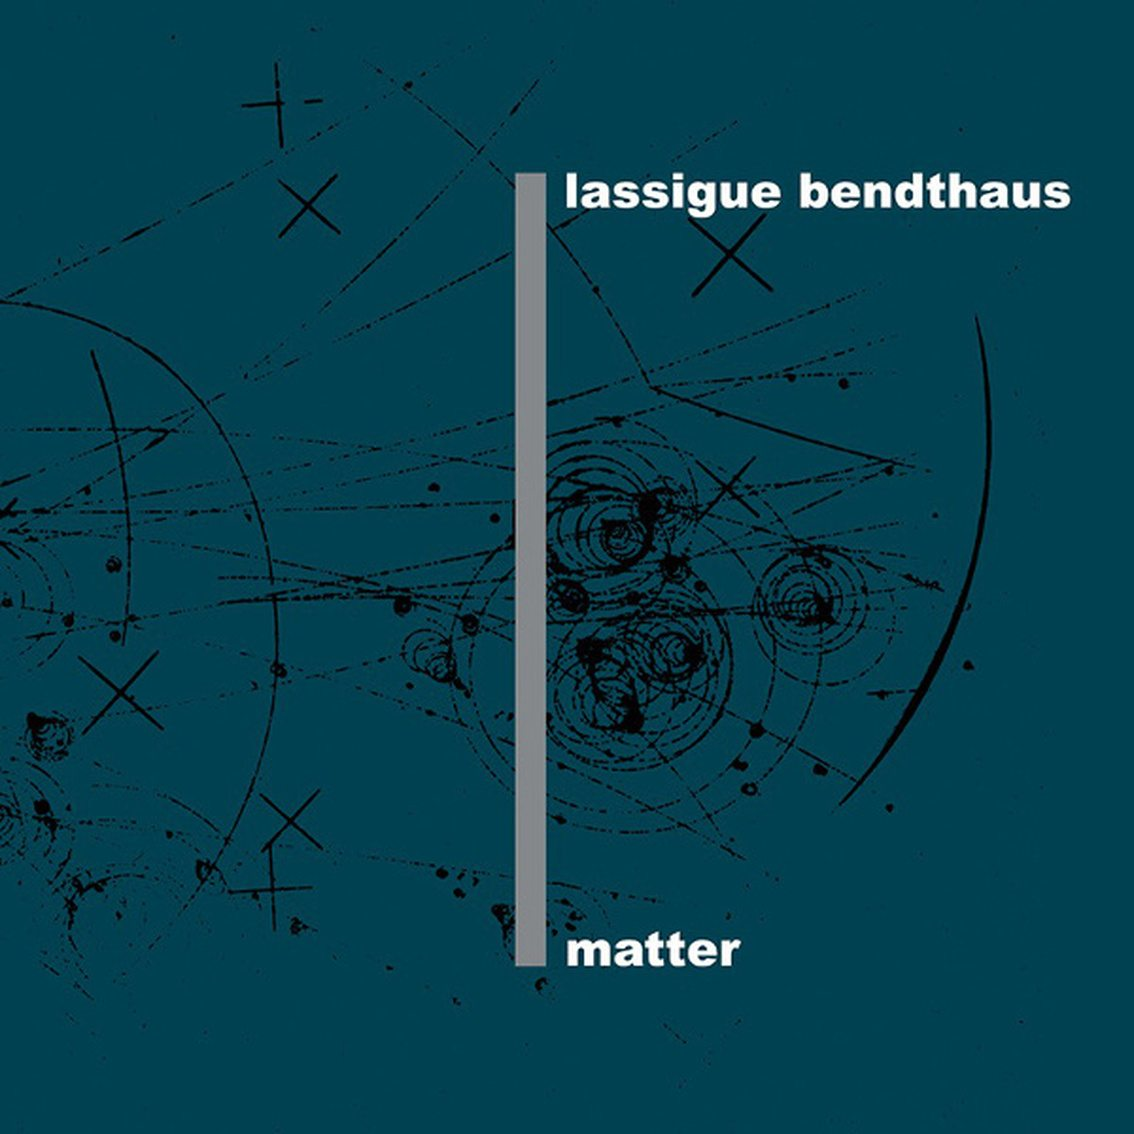 Lassigue Benthaus gets 1991 debut album'Matter' reissued as a 2CD set